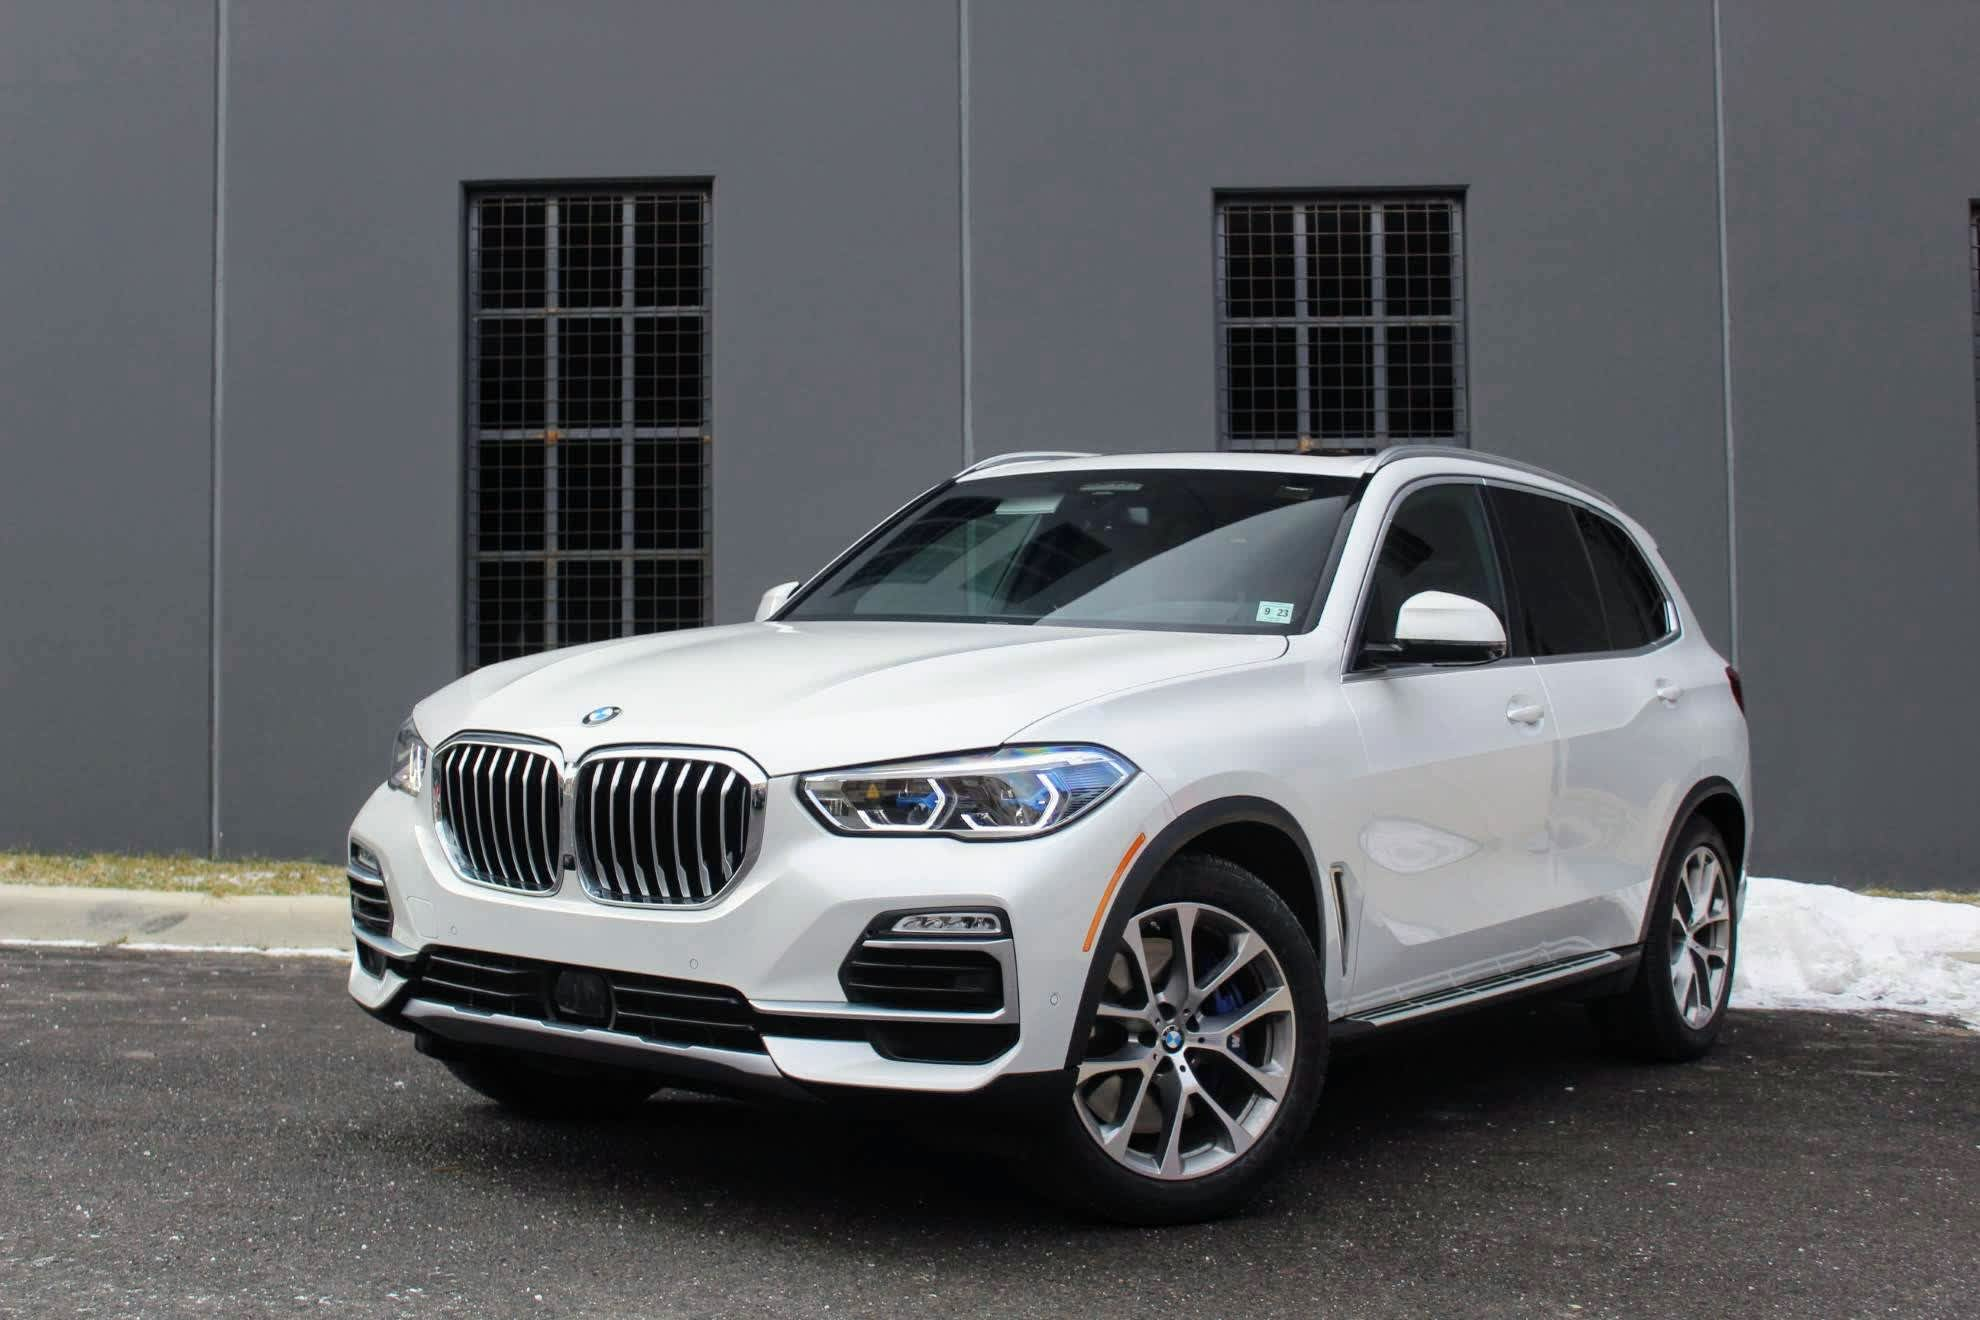 Bmw X5 Third Row >> Review Bmw Packs X5 Suv With High Tech Options And Signature Engine